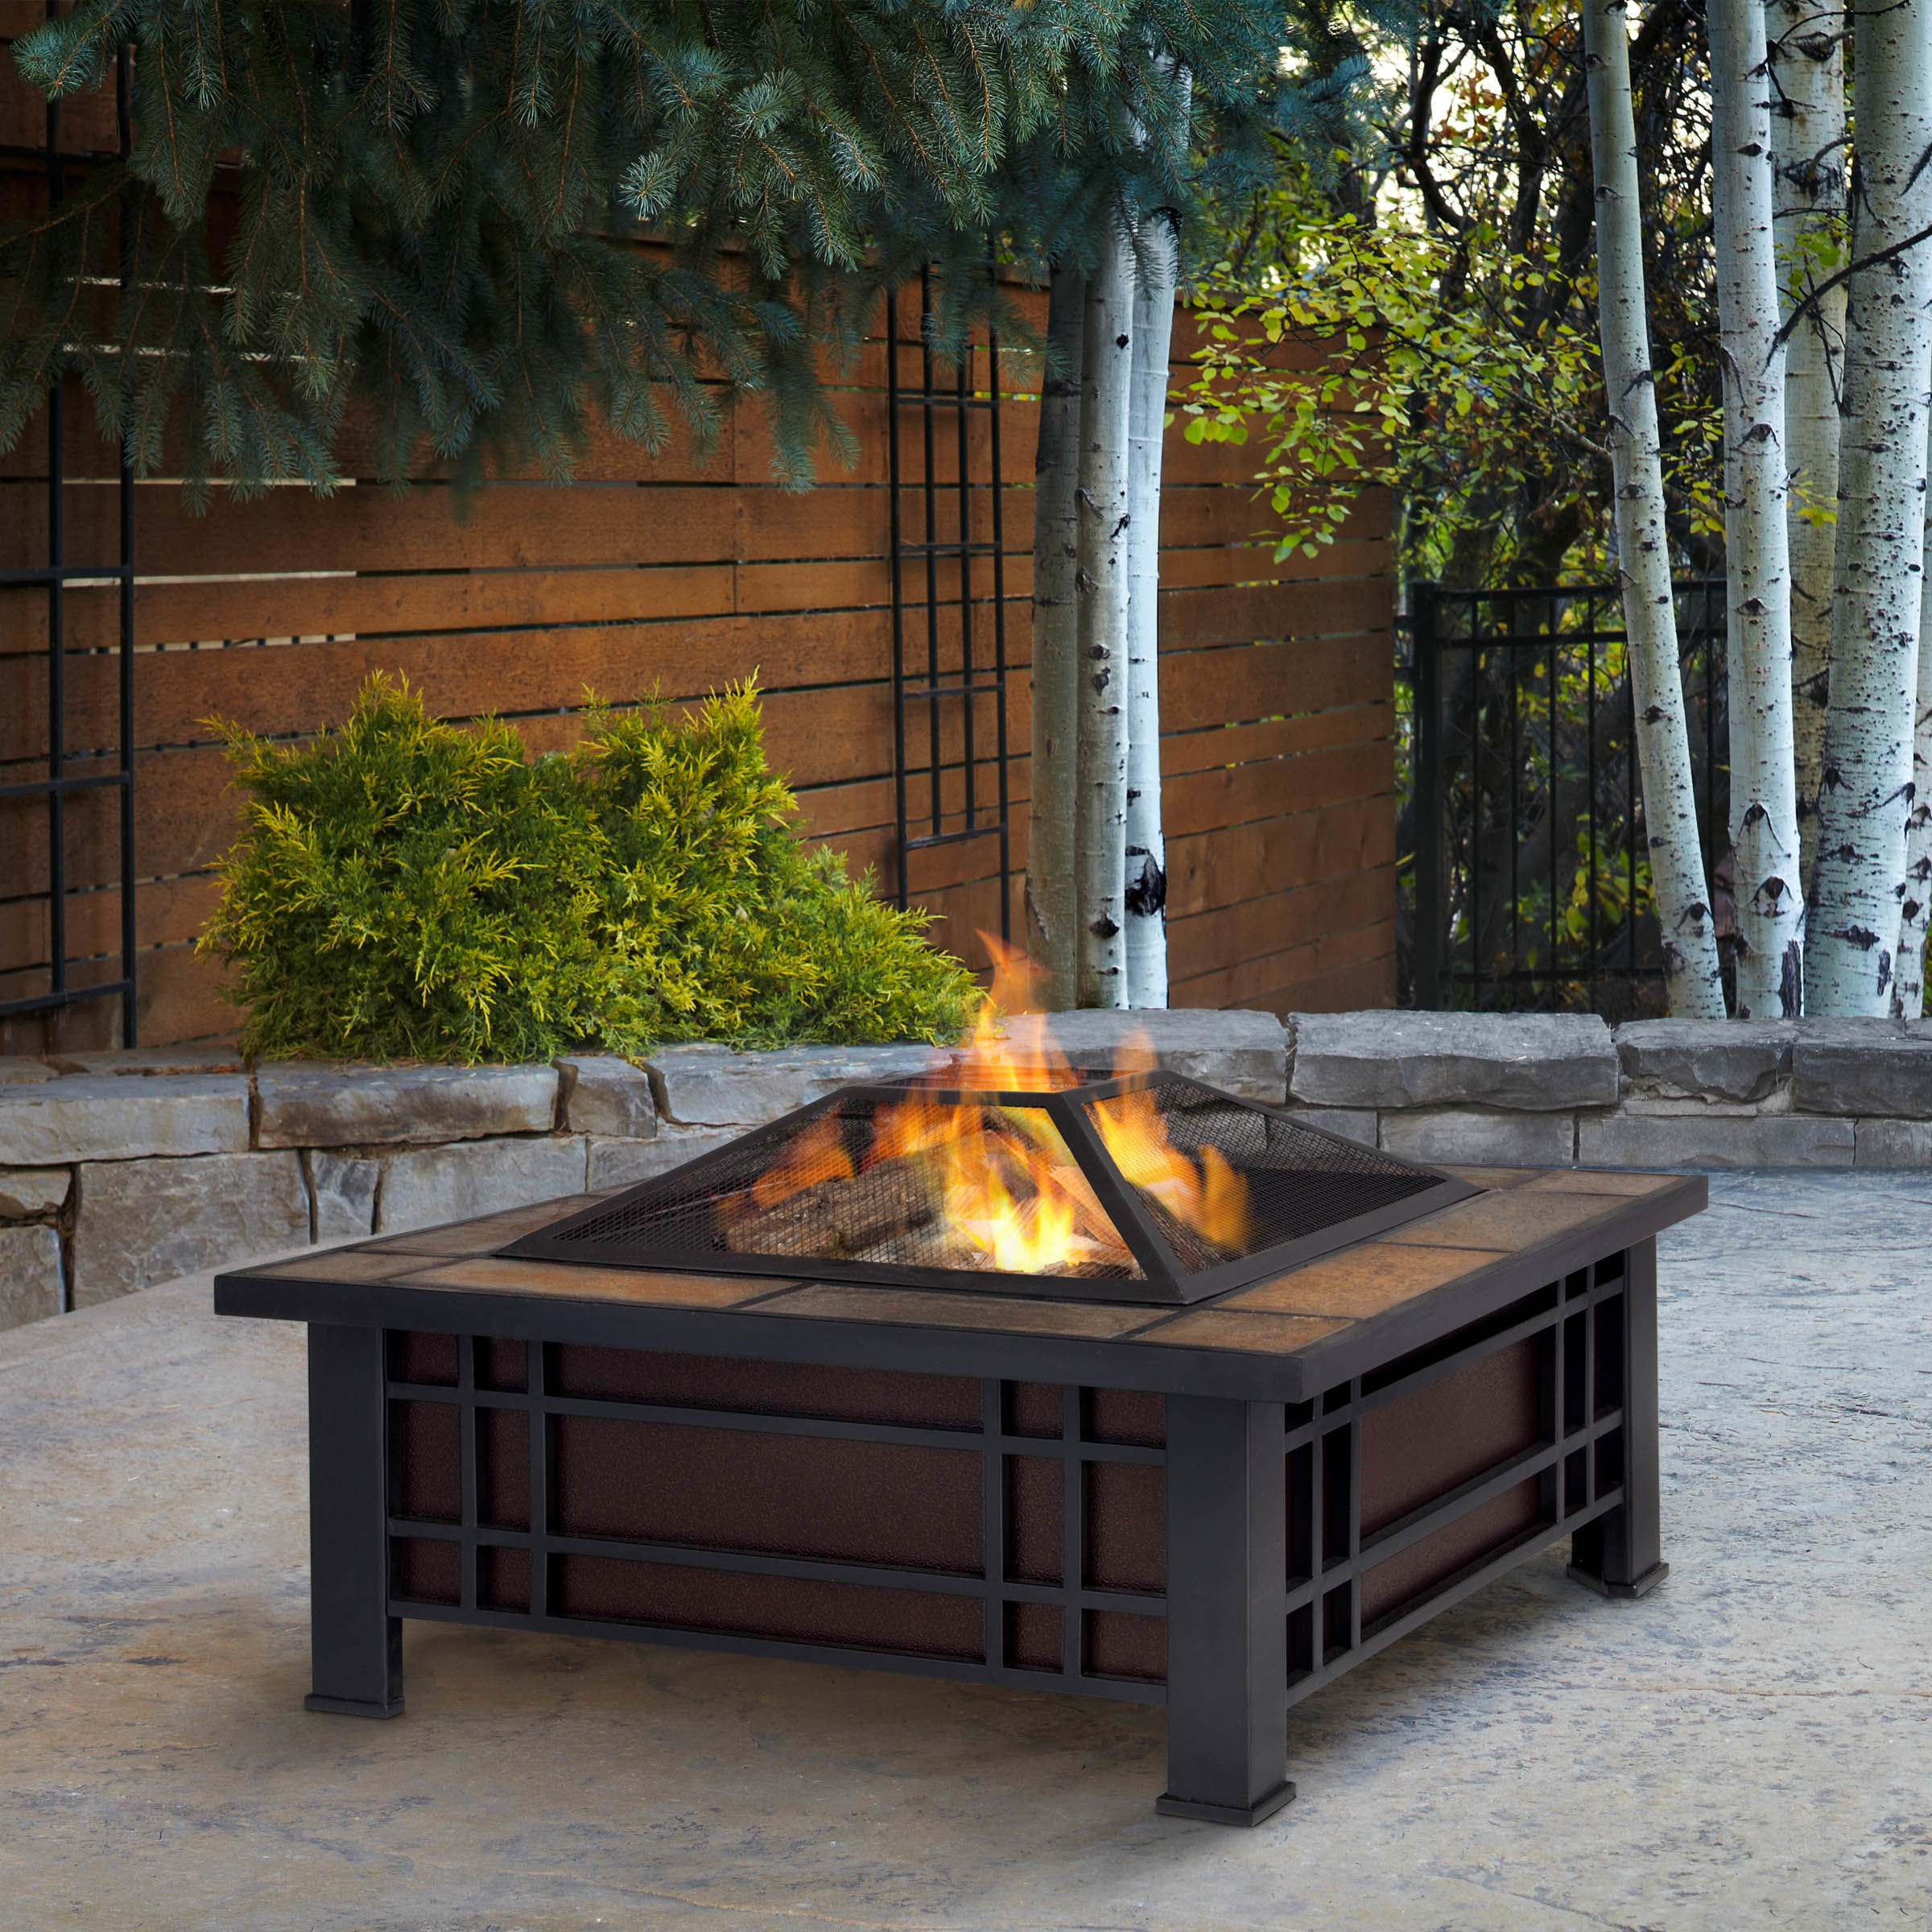 Garden Lights Savannah Wood Burning Fire Pit